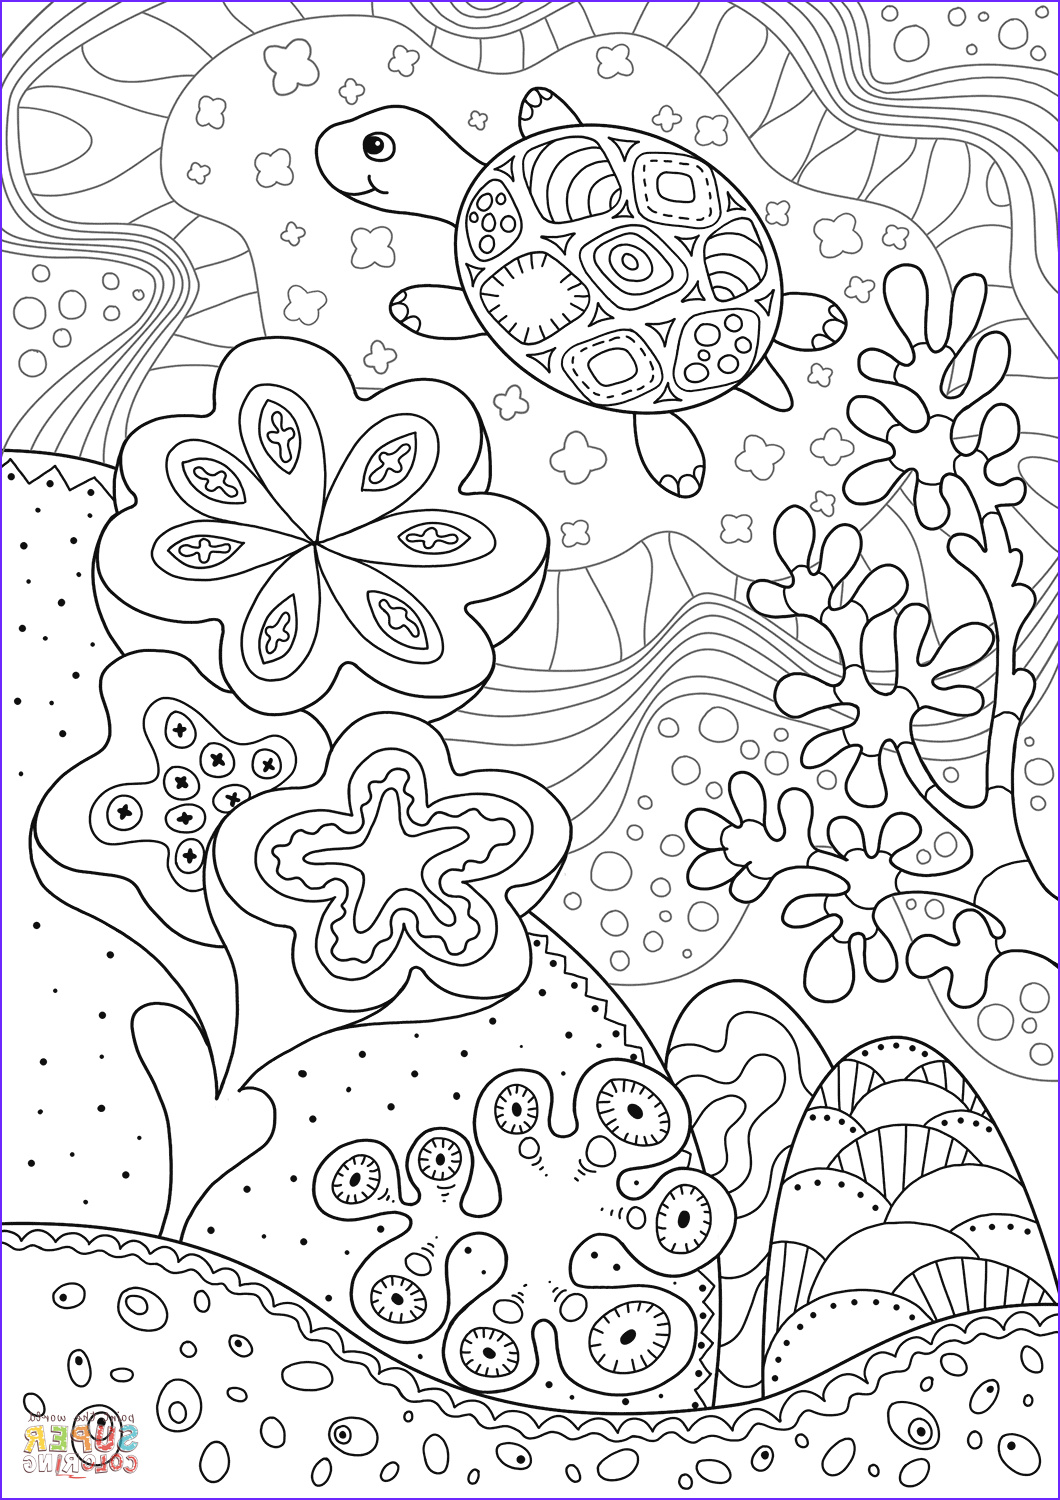 Coral Reef Coloring Pages Awesome Collection Cute Sea Turtle In Coral Reef Coloring Page